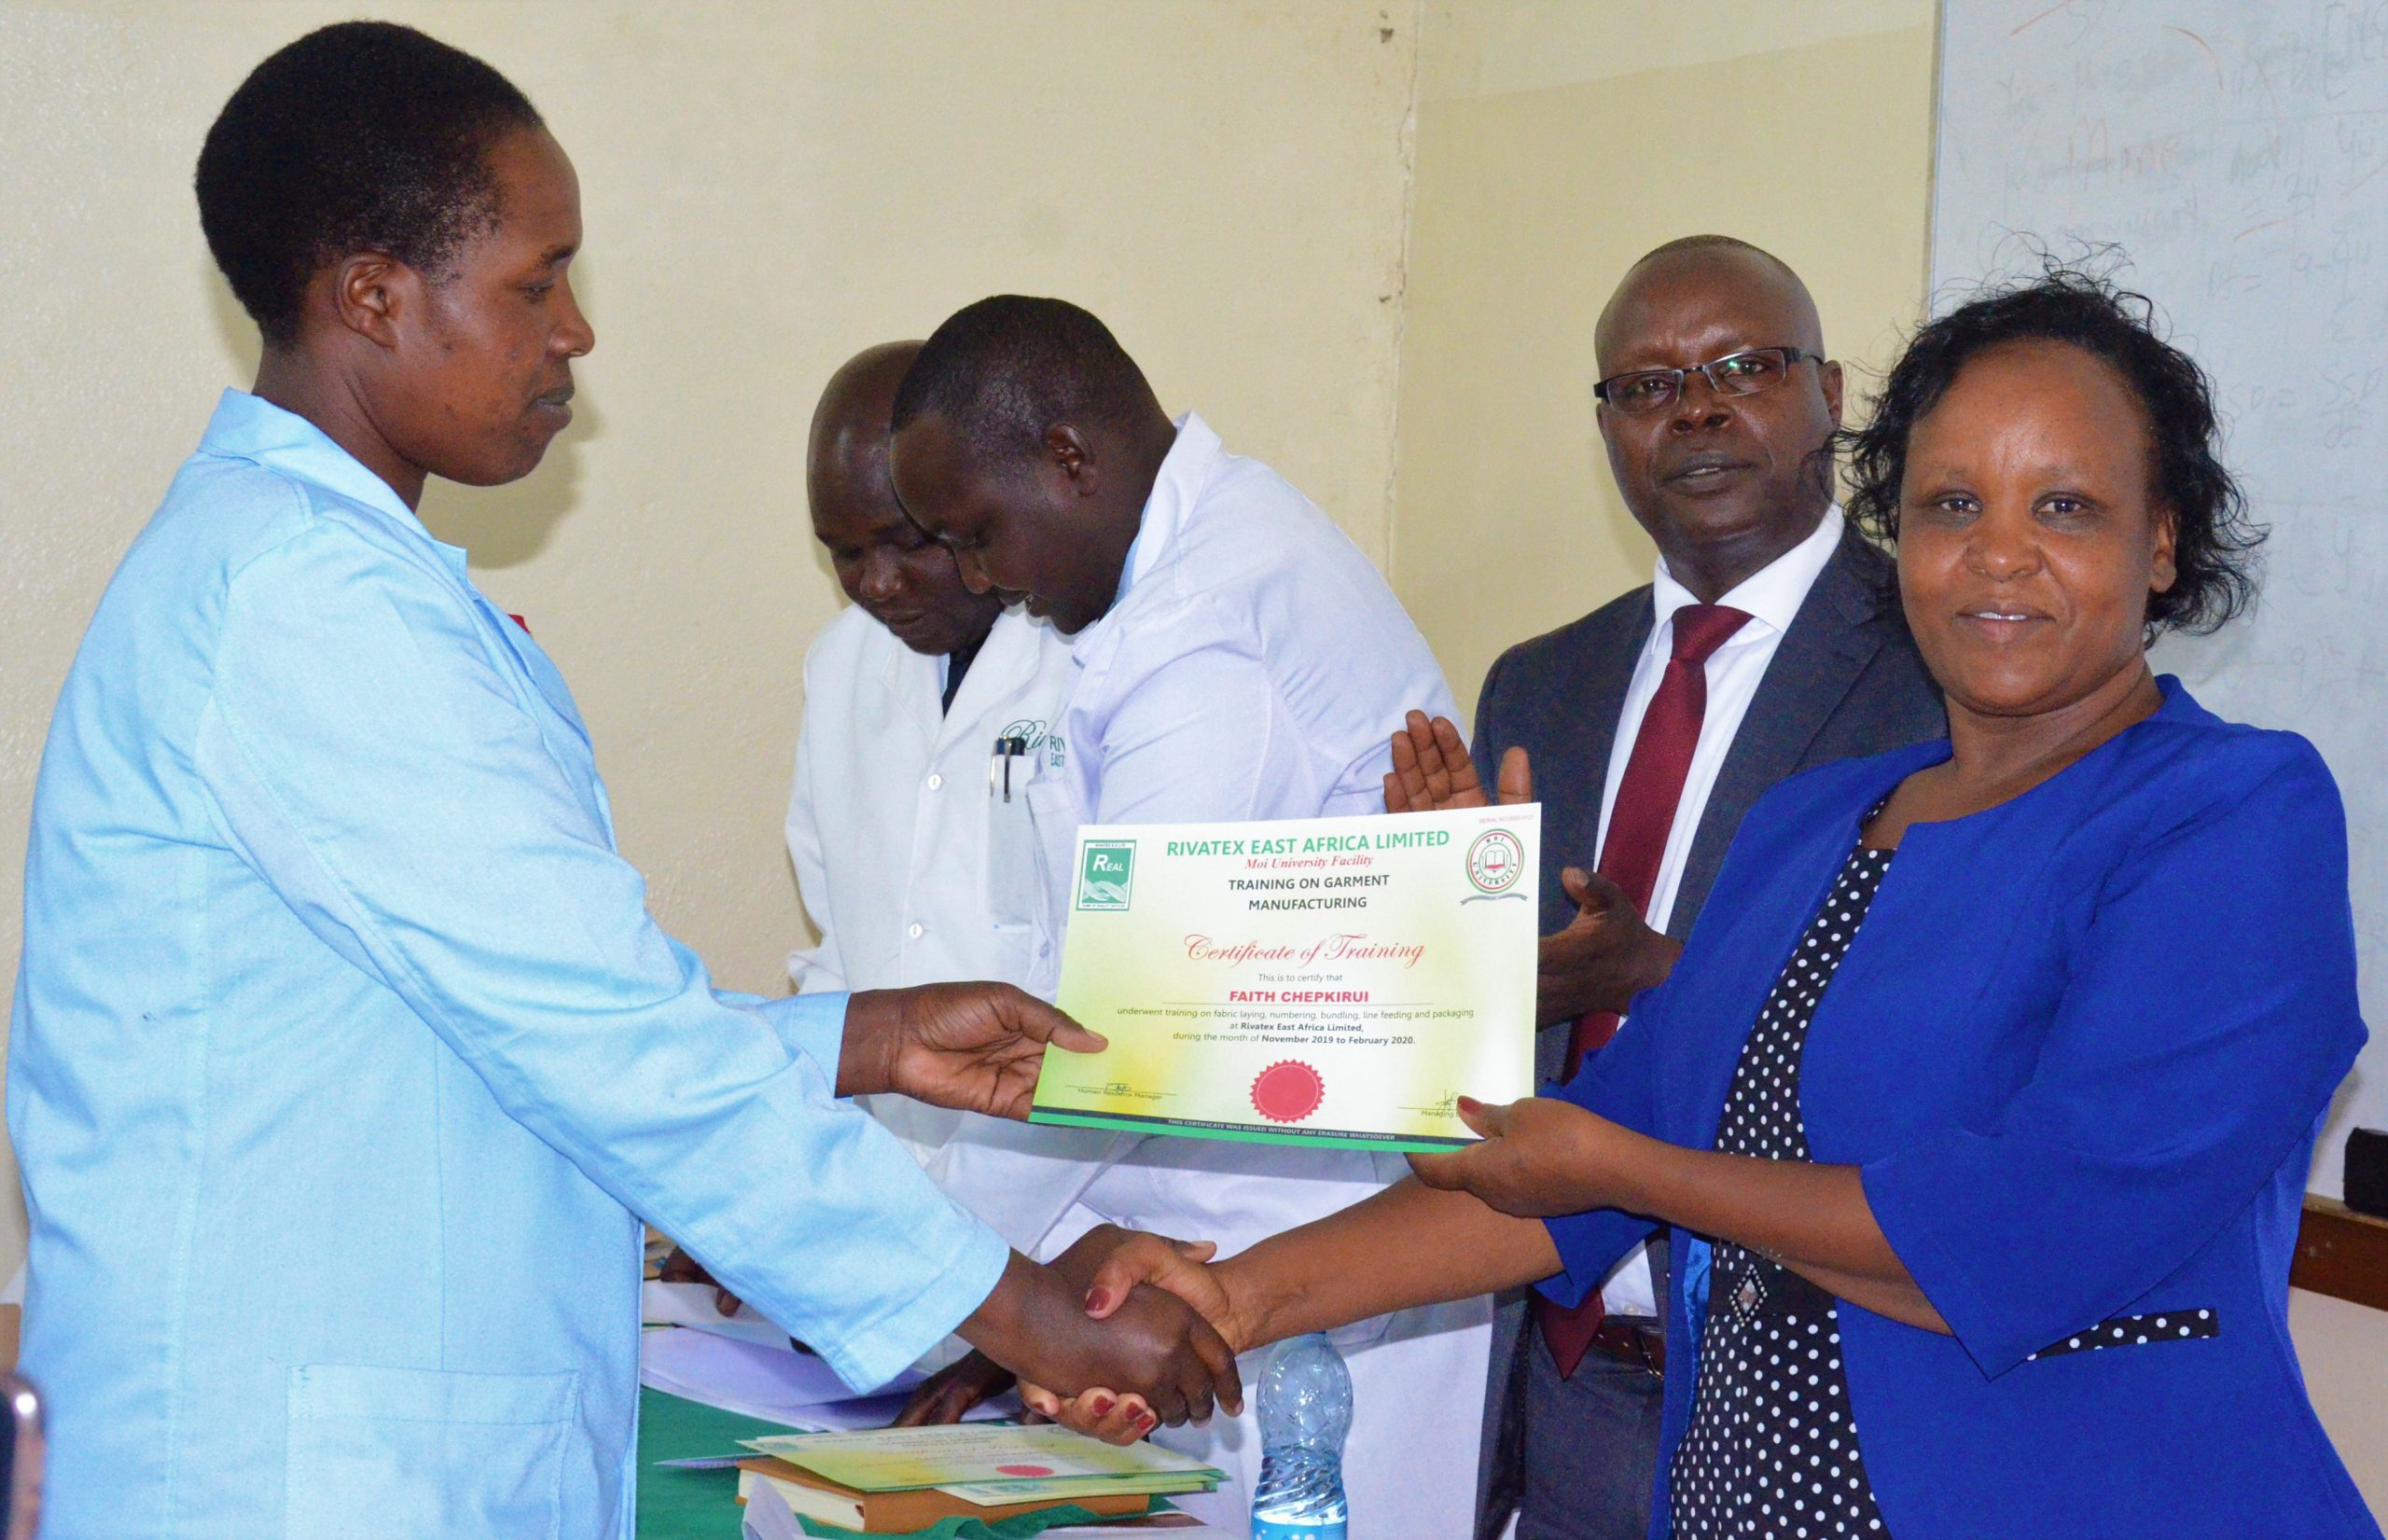 Bomet Chief Executive Committee member in charge of Education Julian Yegon (Right) awards a certificate to one of the trainees after successfully undergoing training at our facility.